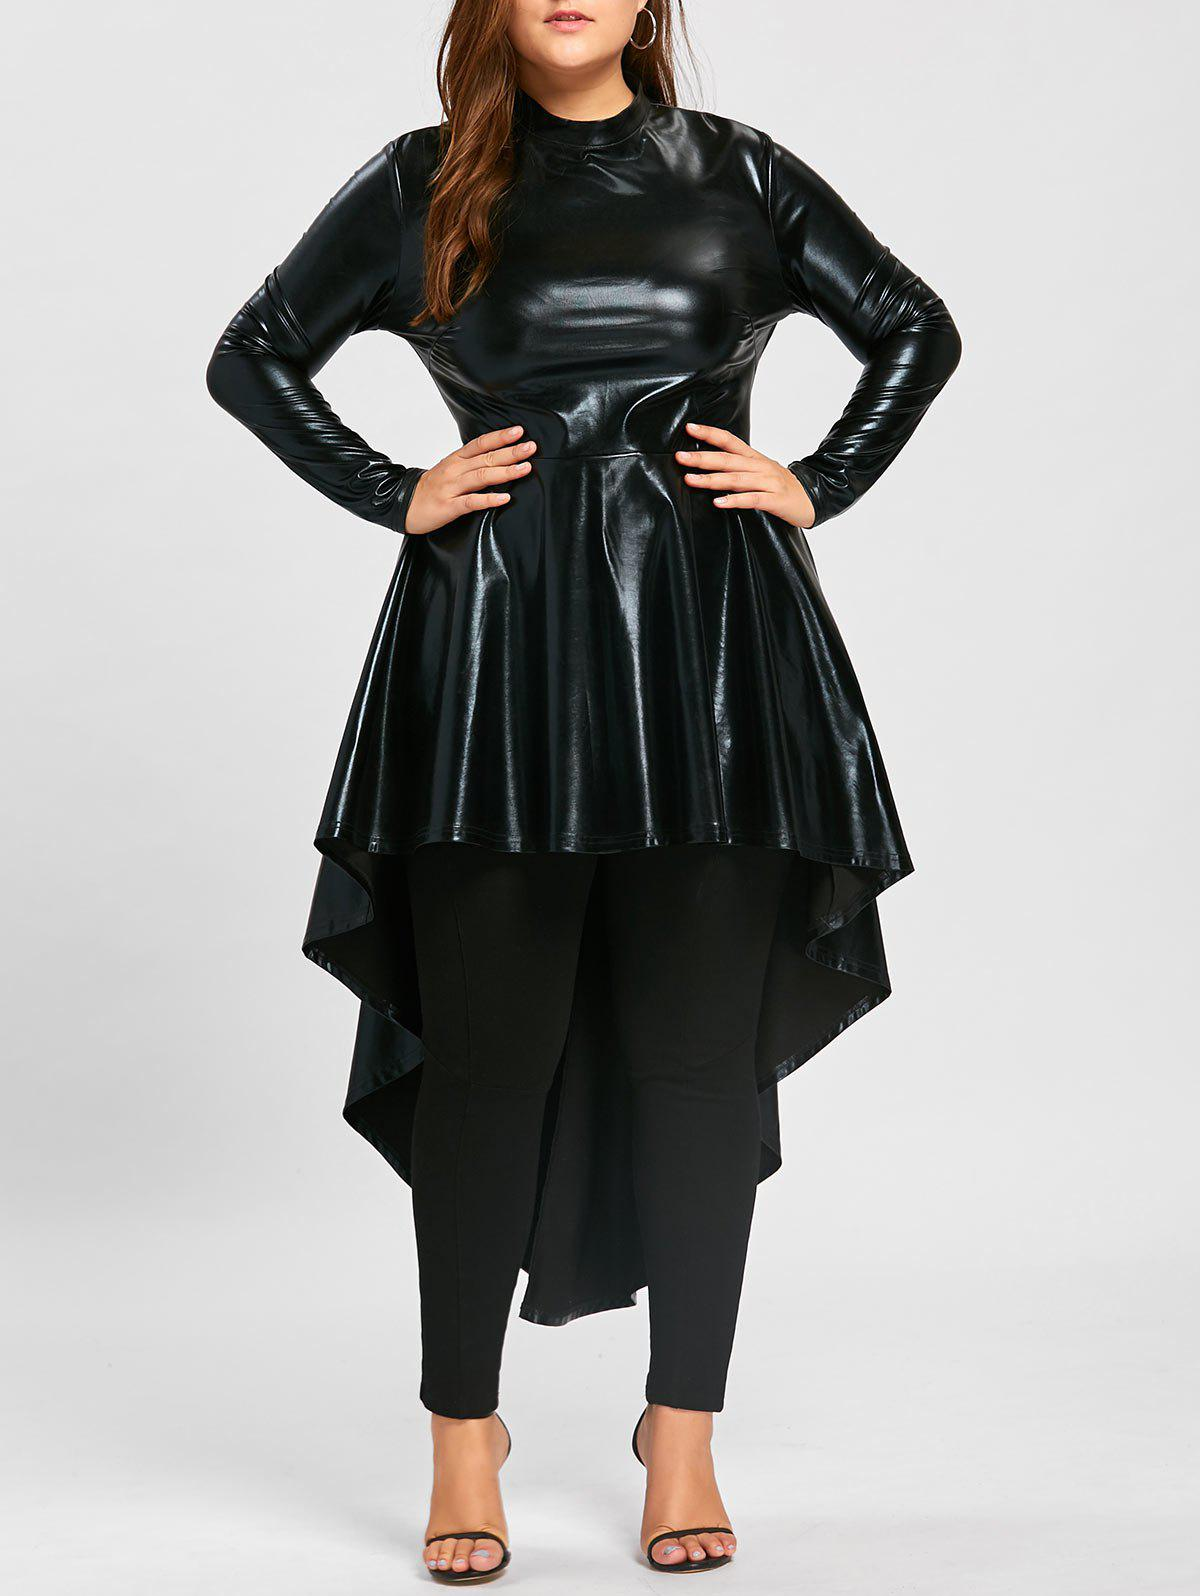 Plus Size PU Leather Long Sleeve High Low T-shirtWOMEN<br><br>Size: 5XL; Color: BLACK; Material: Faux Leather; Shirt Length: Long; Sleeve Length: Full; Collar: Mock Neck; Style: Fashion; Season: Fall,Spring; Pattern Type: Solid; Weight: 0.4300kg; Package Contents: 1 x T-shirt;